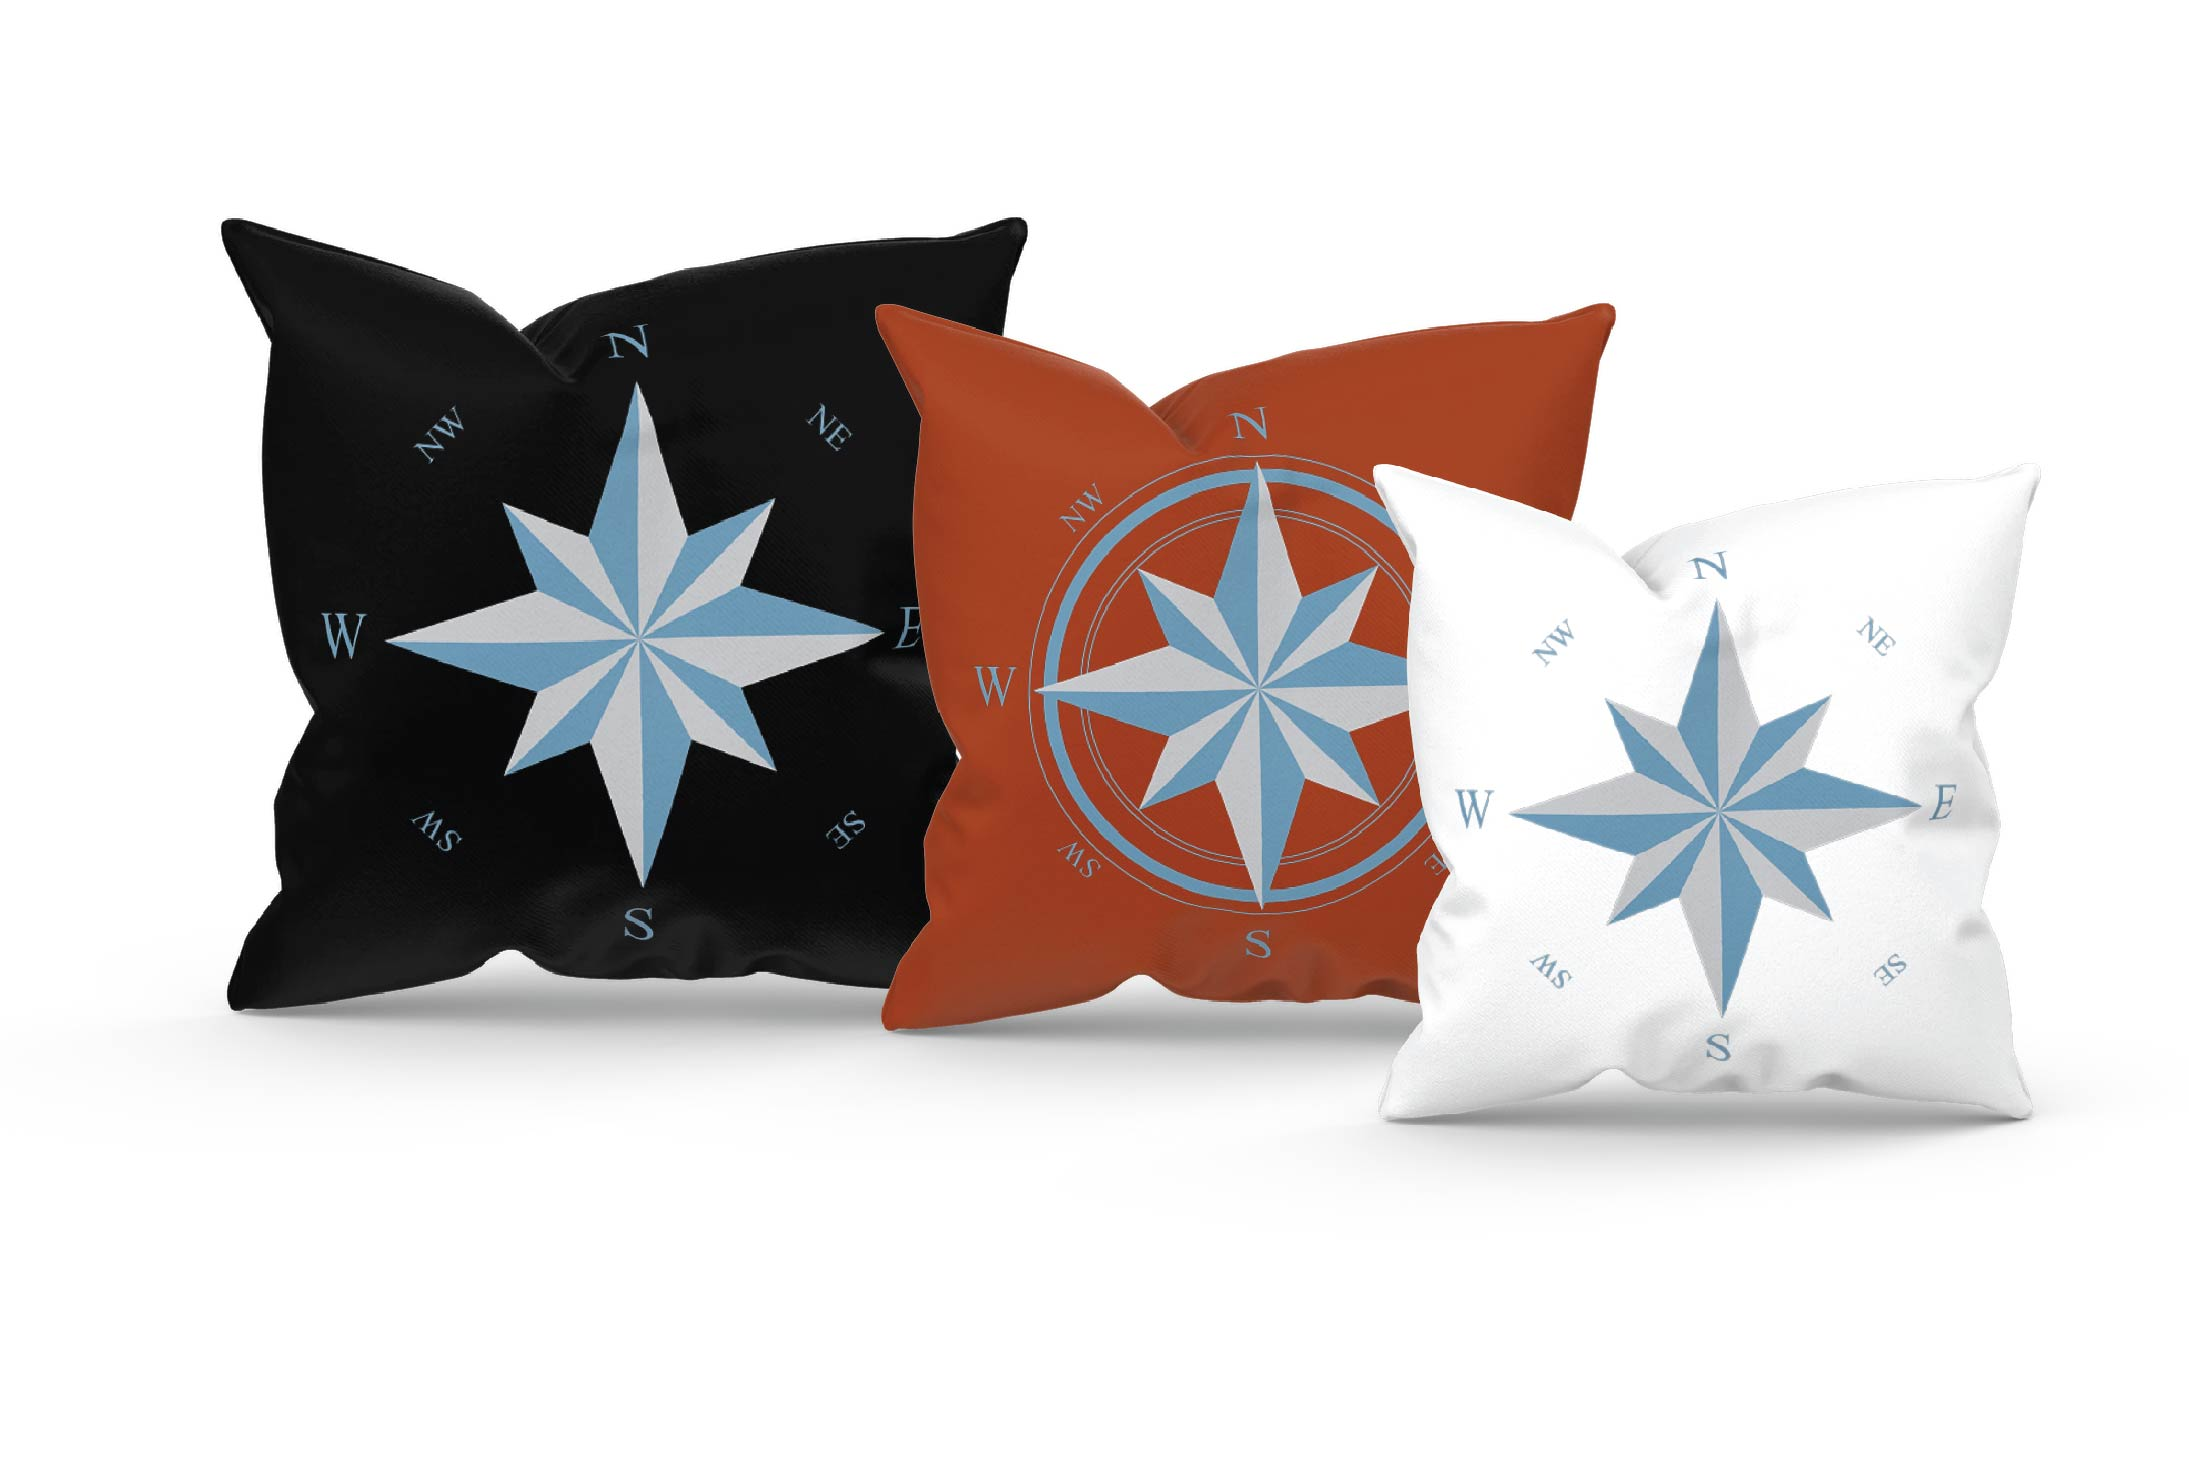 Compass rose navigation silhouette. Travellers decoration. example image 11